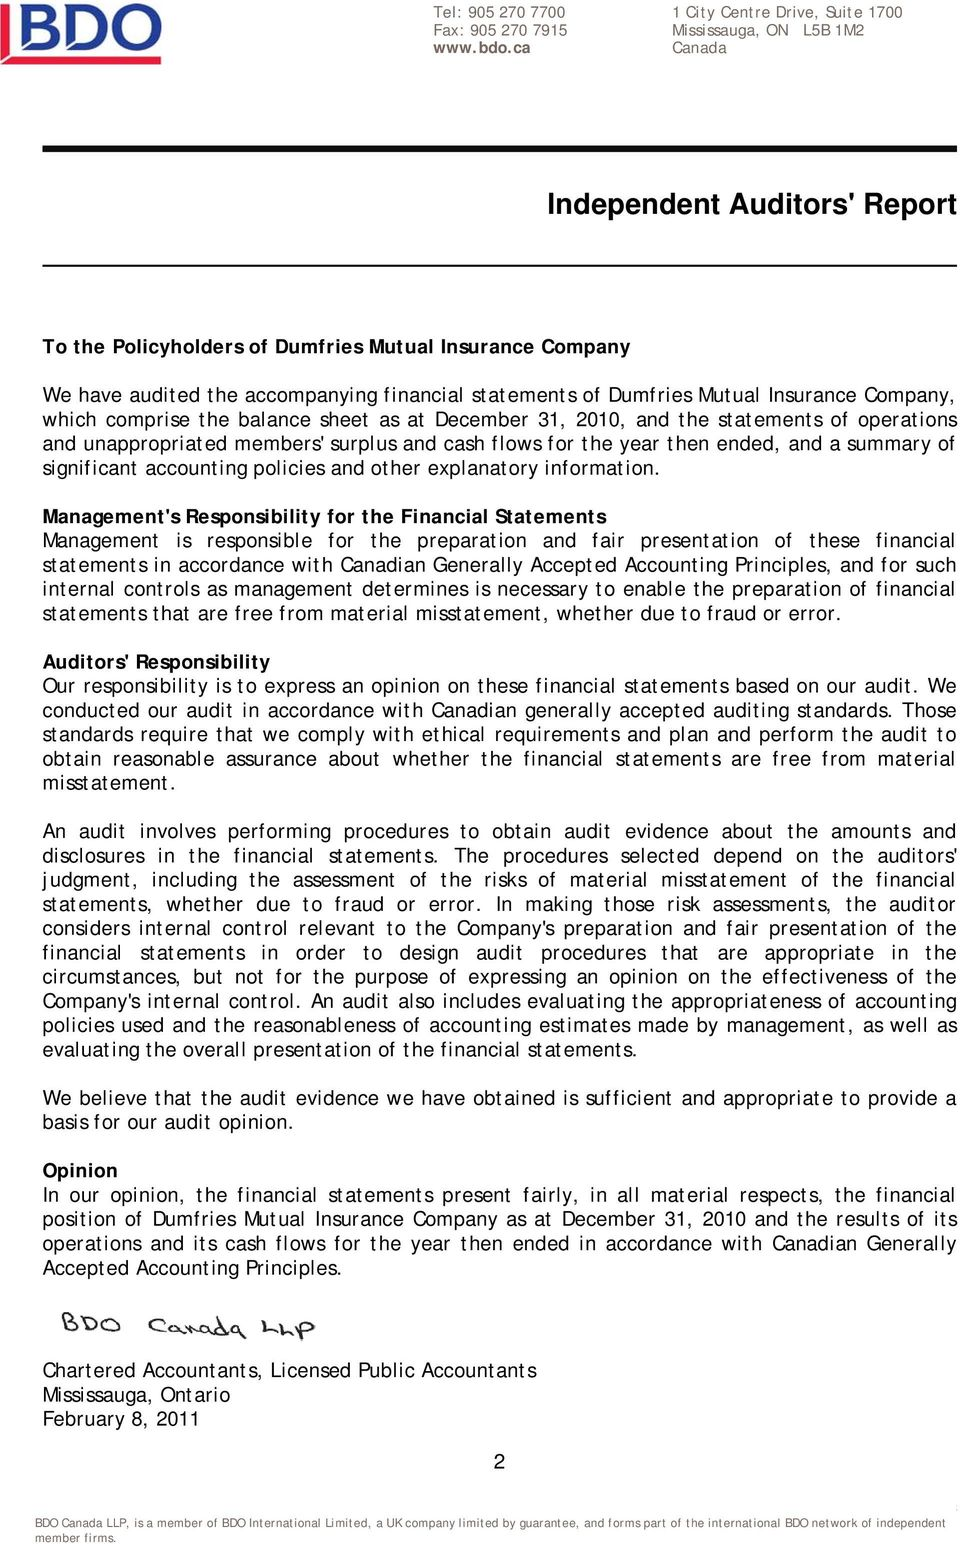 statements of Dumfries Mutual Insurance Company, which comprise the balance sheet as at December 31, 2010, and the statements of operations and unappropriated members' surplus and cash flows for the